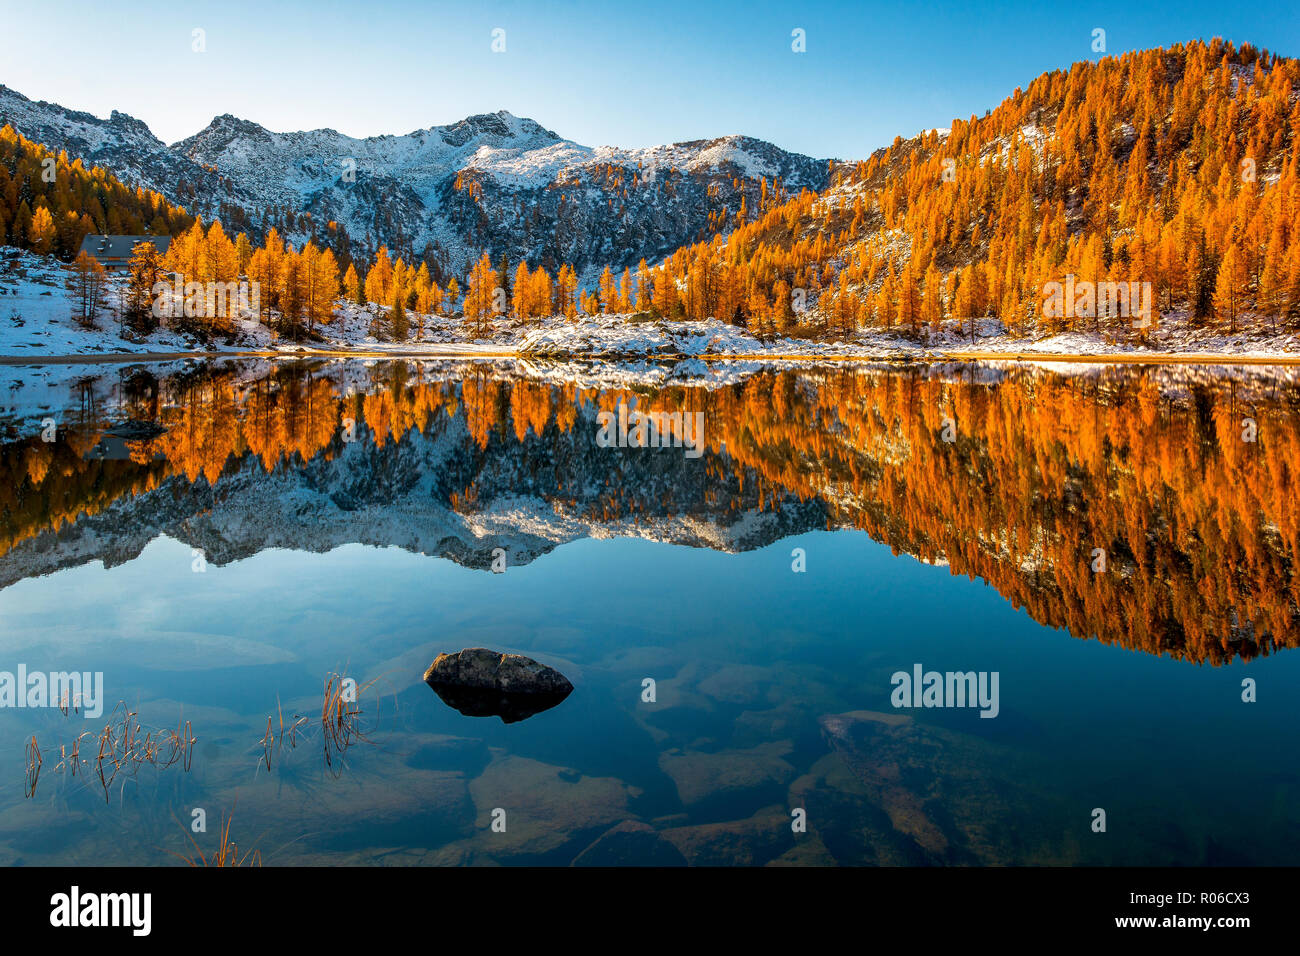 Autumn mirror at San Giuliano lake, Dolomiti di Brenta Natural Park, Dolomites, Trentino-Alto Adige, Italy, Europe - Stock Image